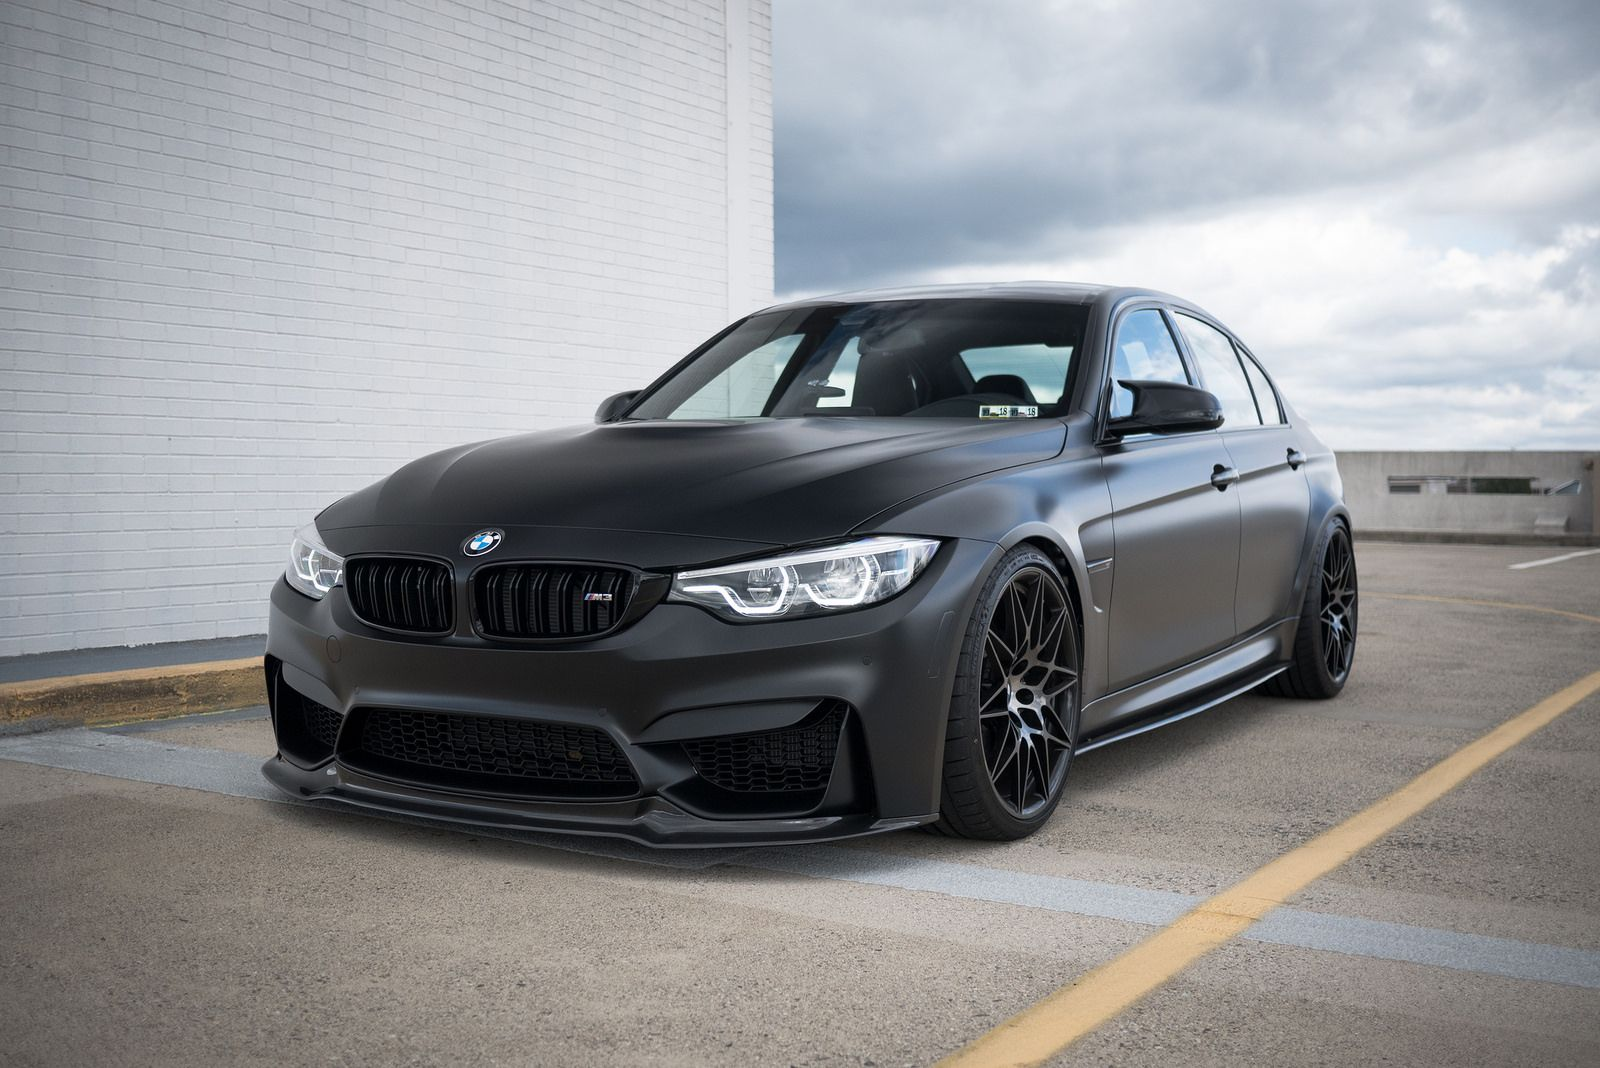 bmw m3 and bmw m4 forum view single post 2018 stealth black f80 rh pinterest com